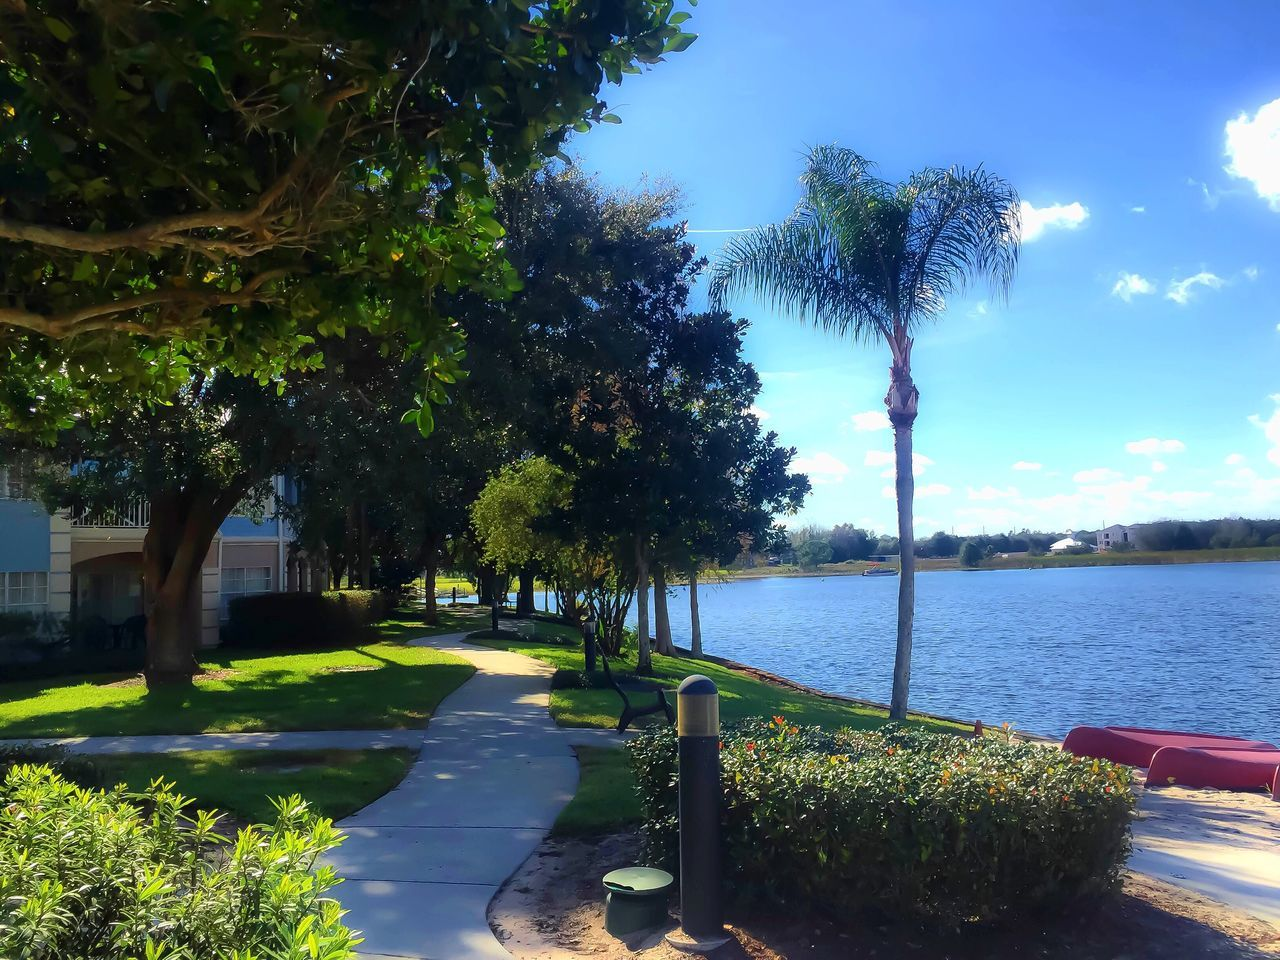 View of pathway by calm lake